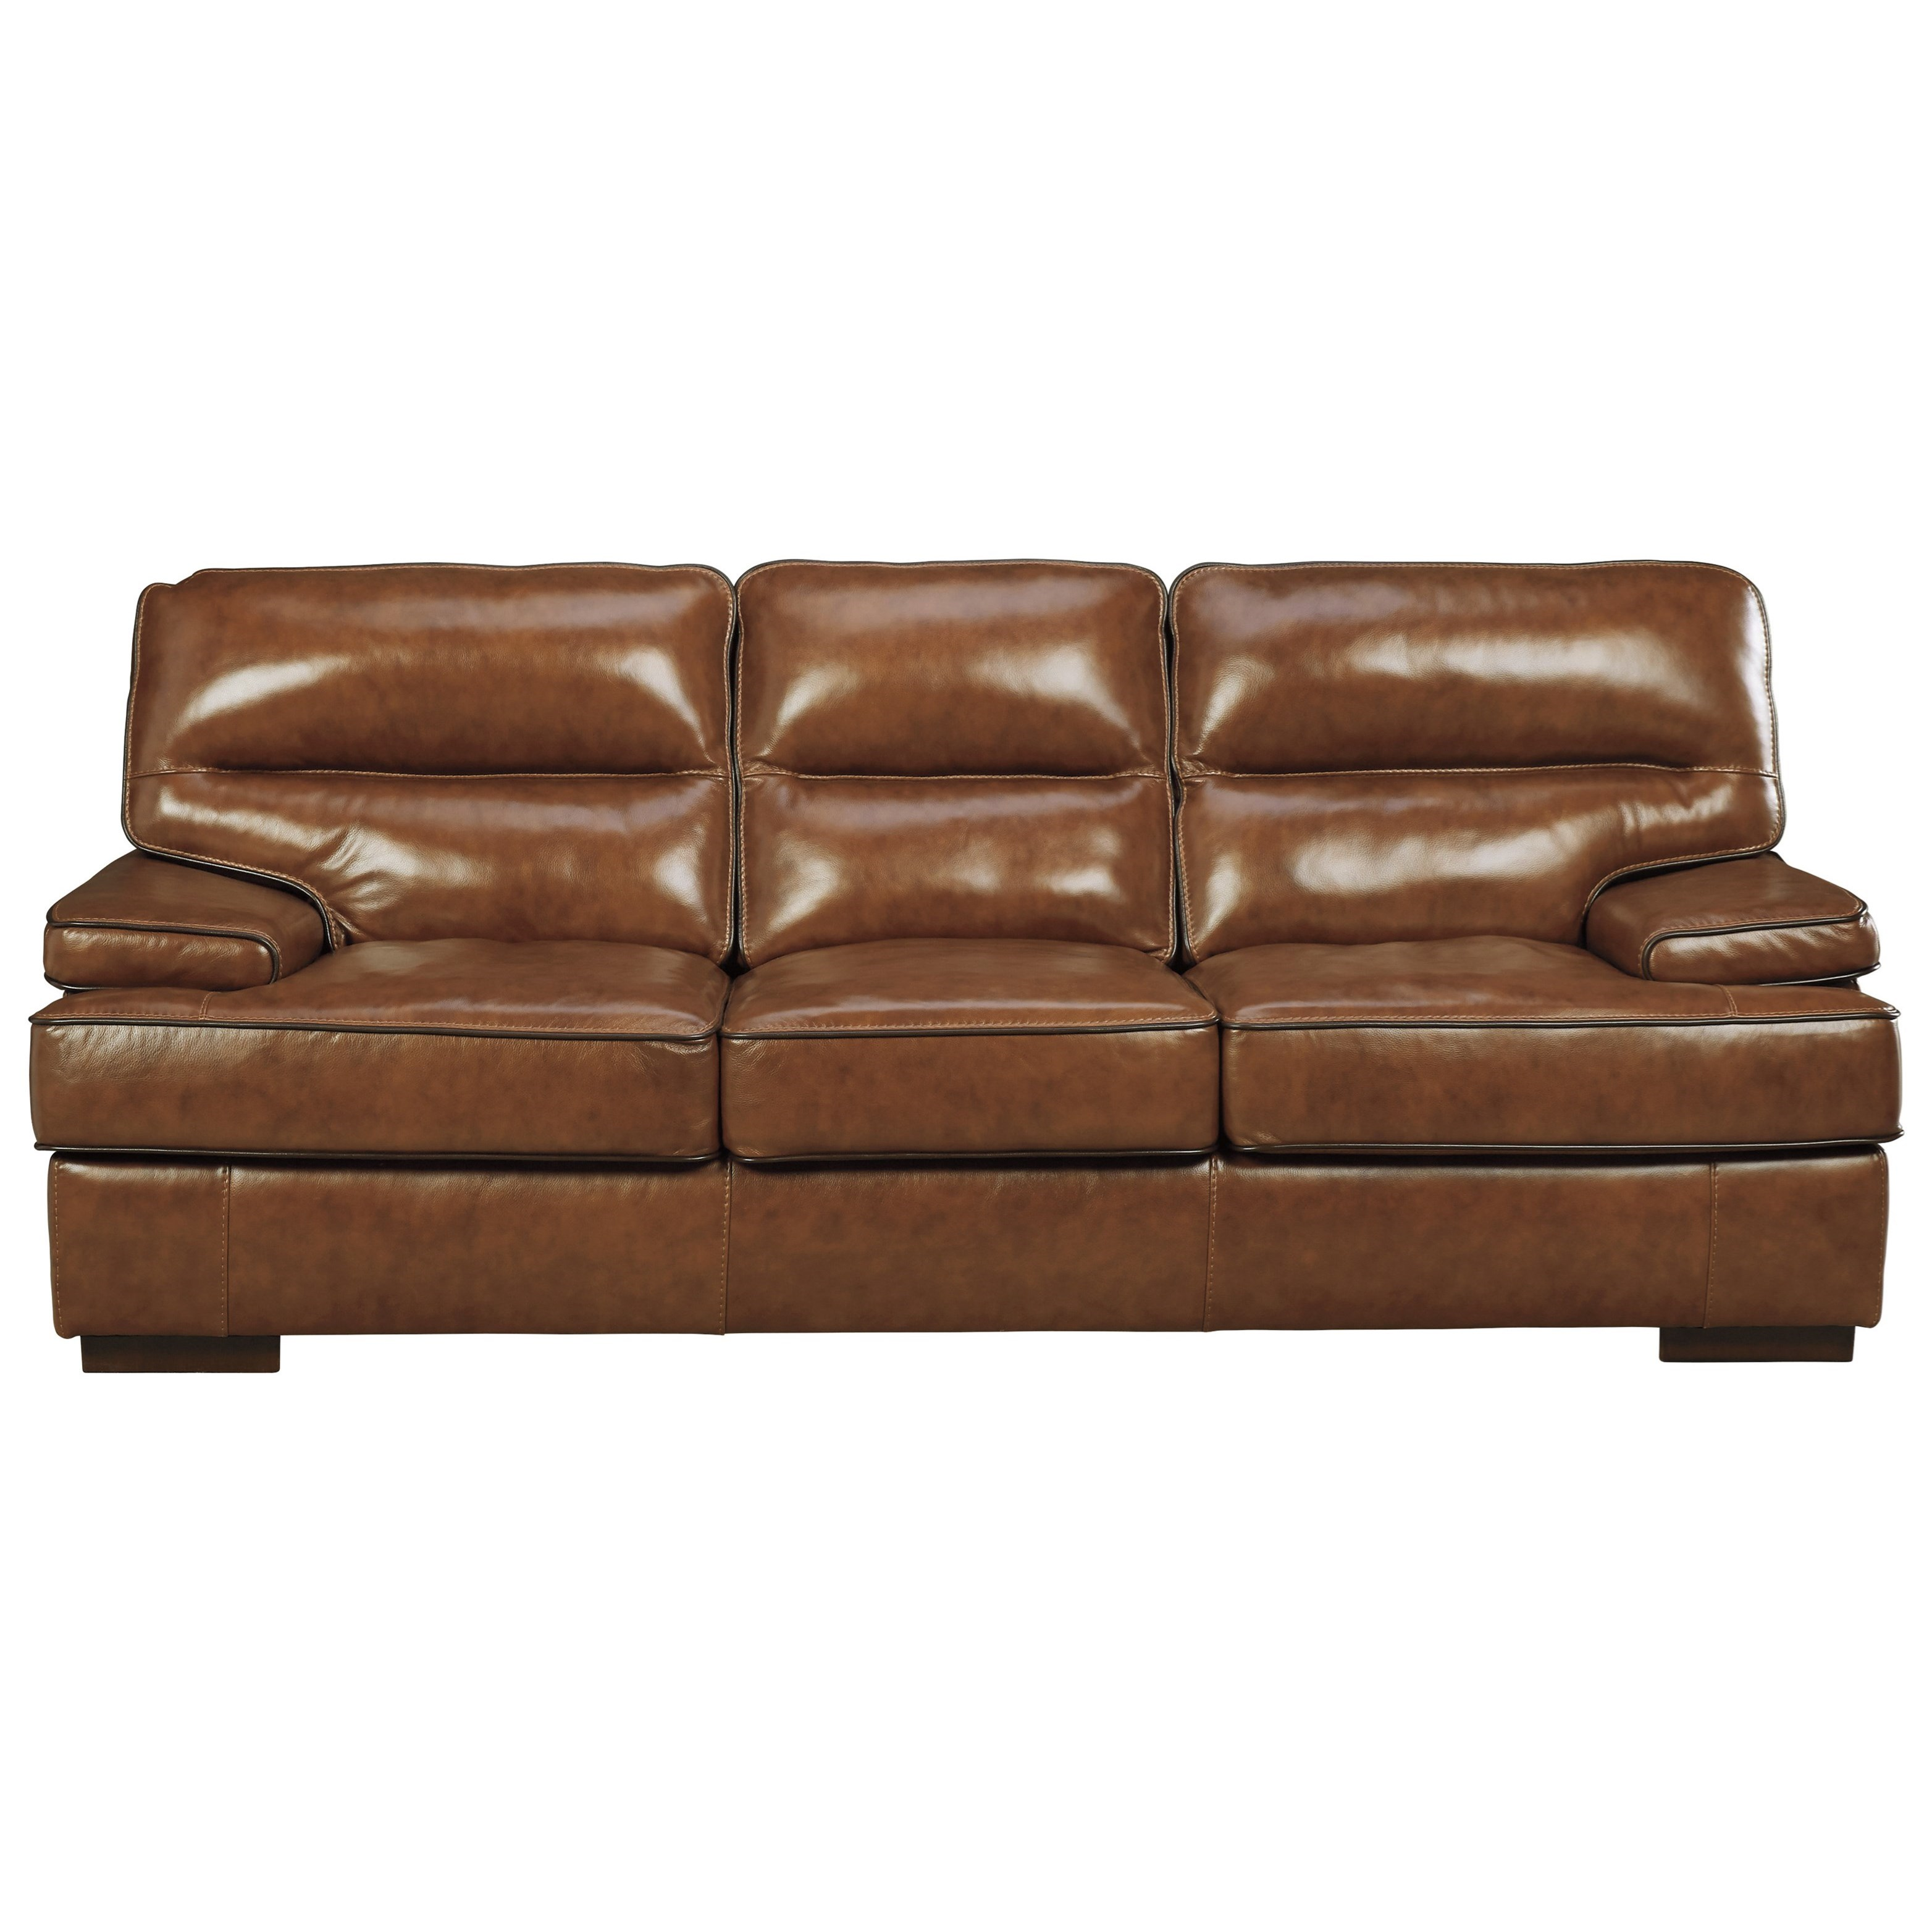 Signature Design By Ashley Palner Contemporary Leather Match Sofa Olinde 39 S Furniture Sofas